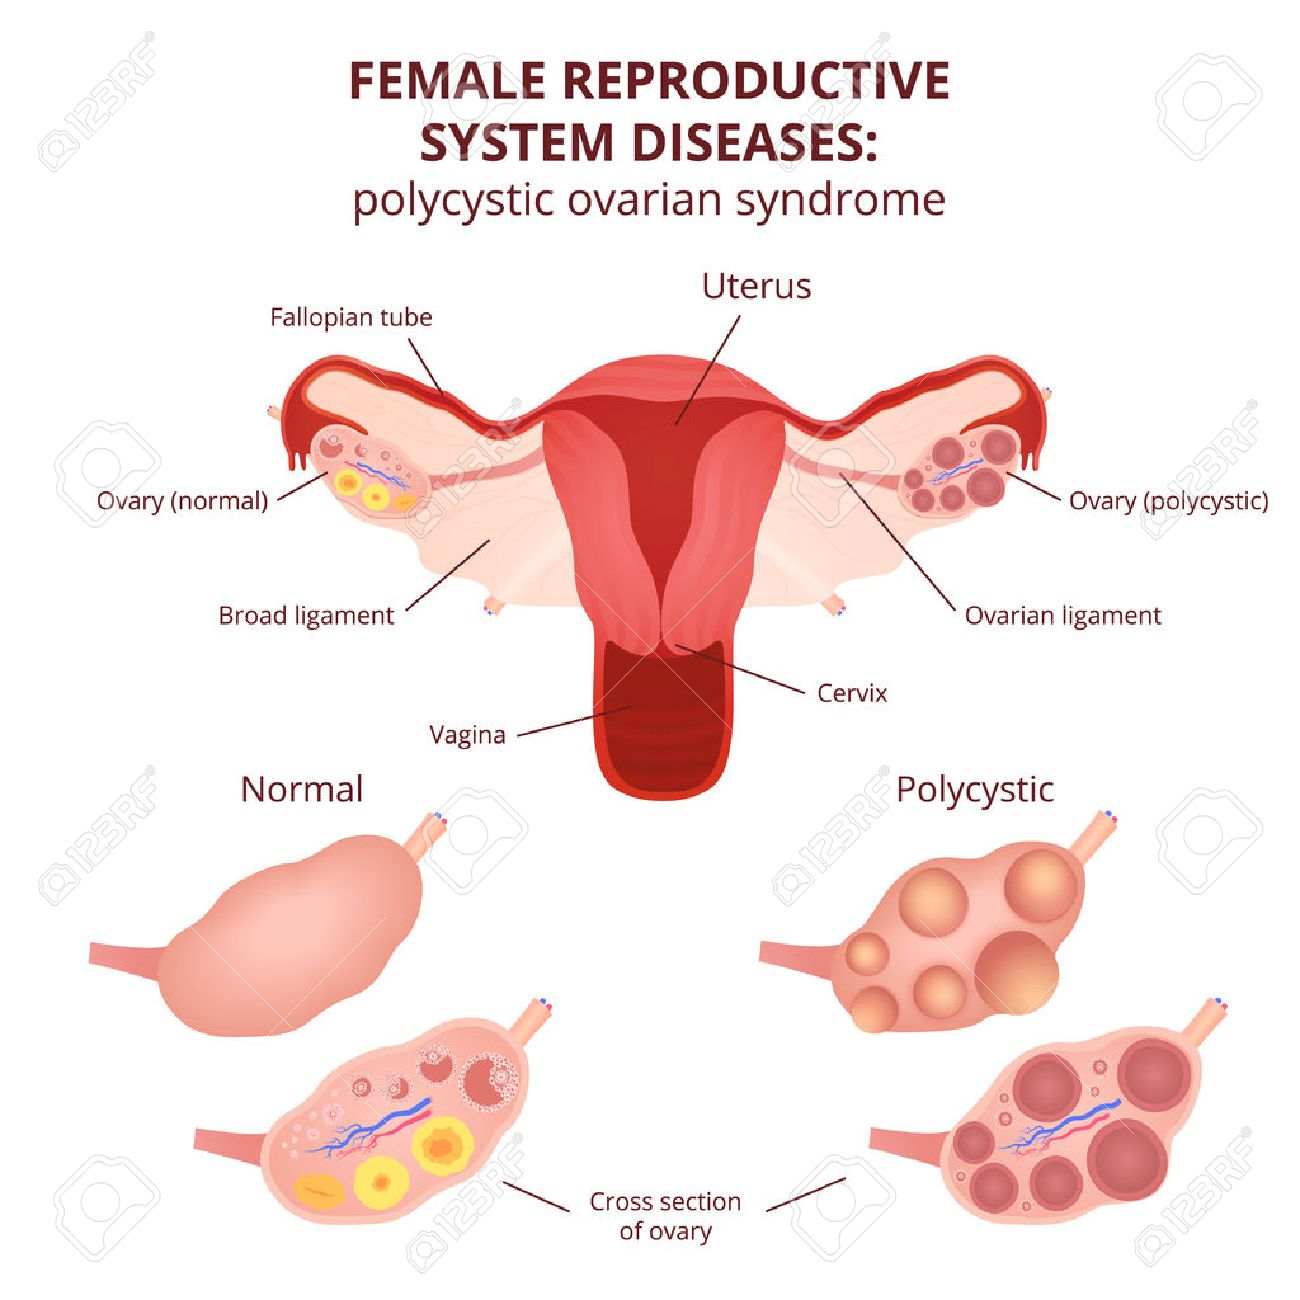 female reproductive system, the uterus and ovaries scheme, polycystic ovary syndrome, ovarian cyst - 56801820